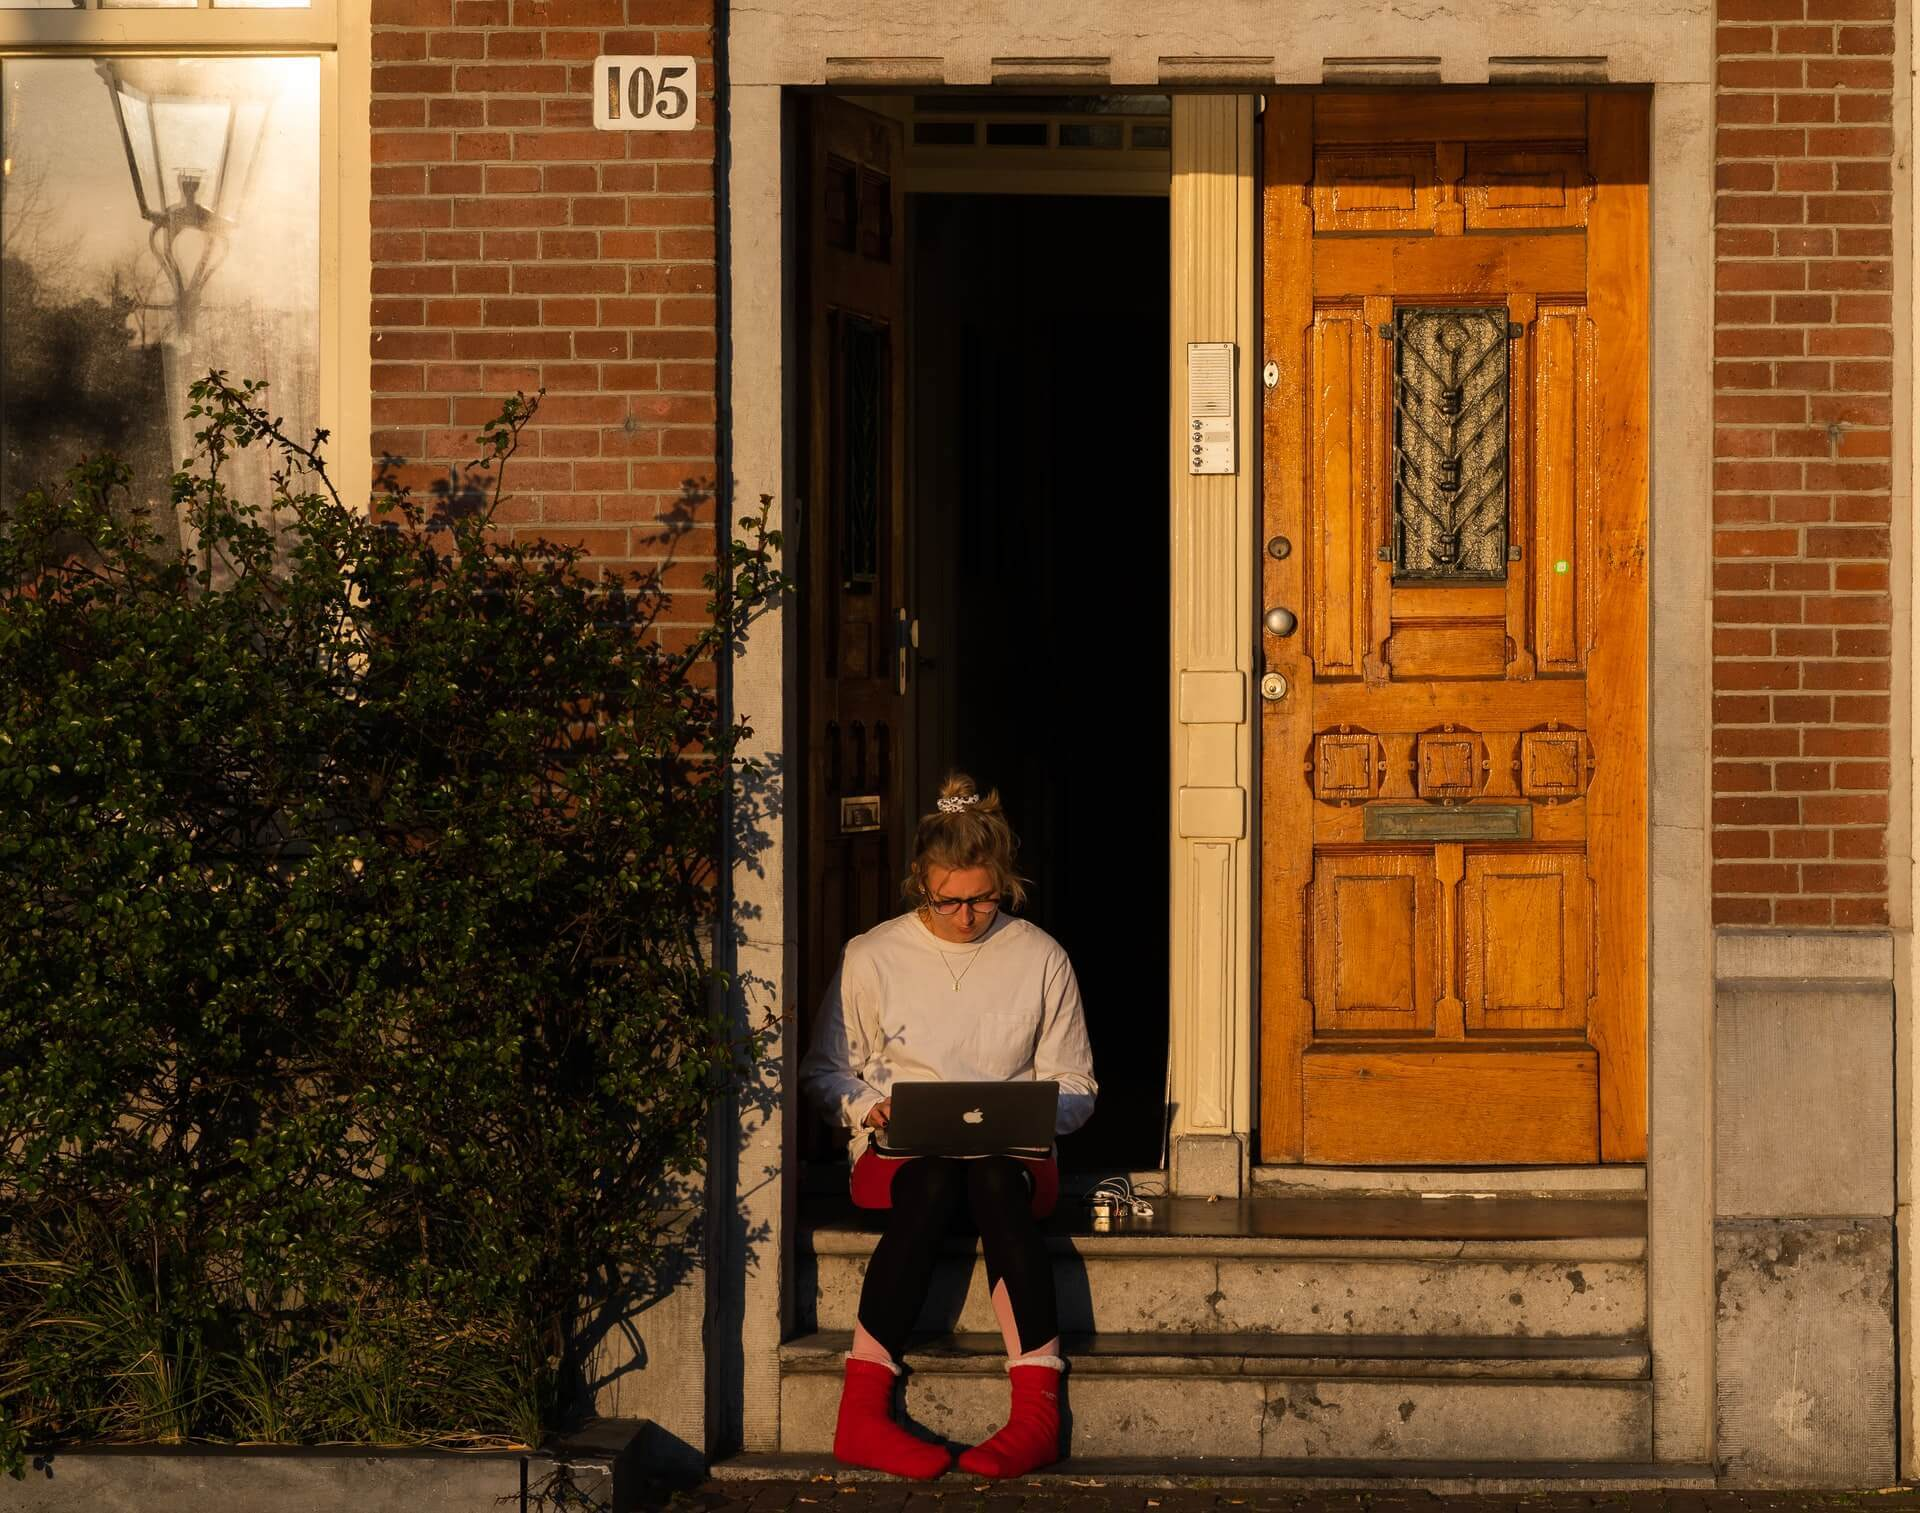 A woman in red socks and a grey sweater works on a laptop outside.